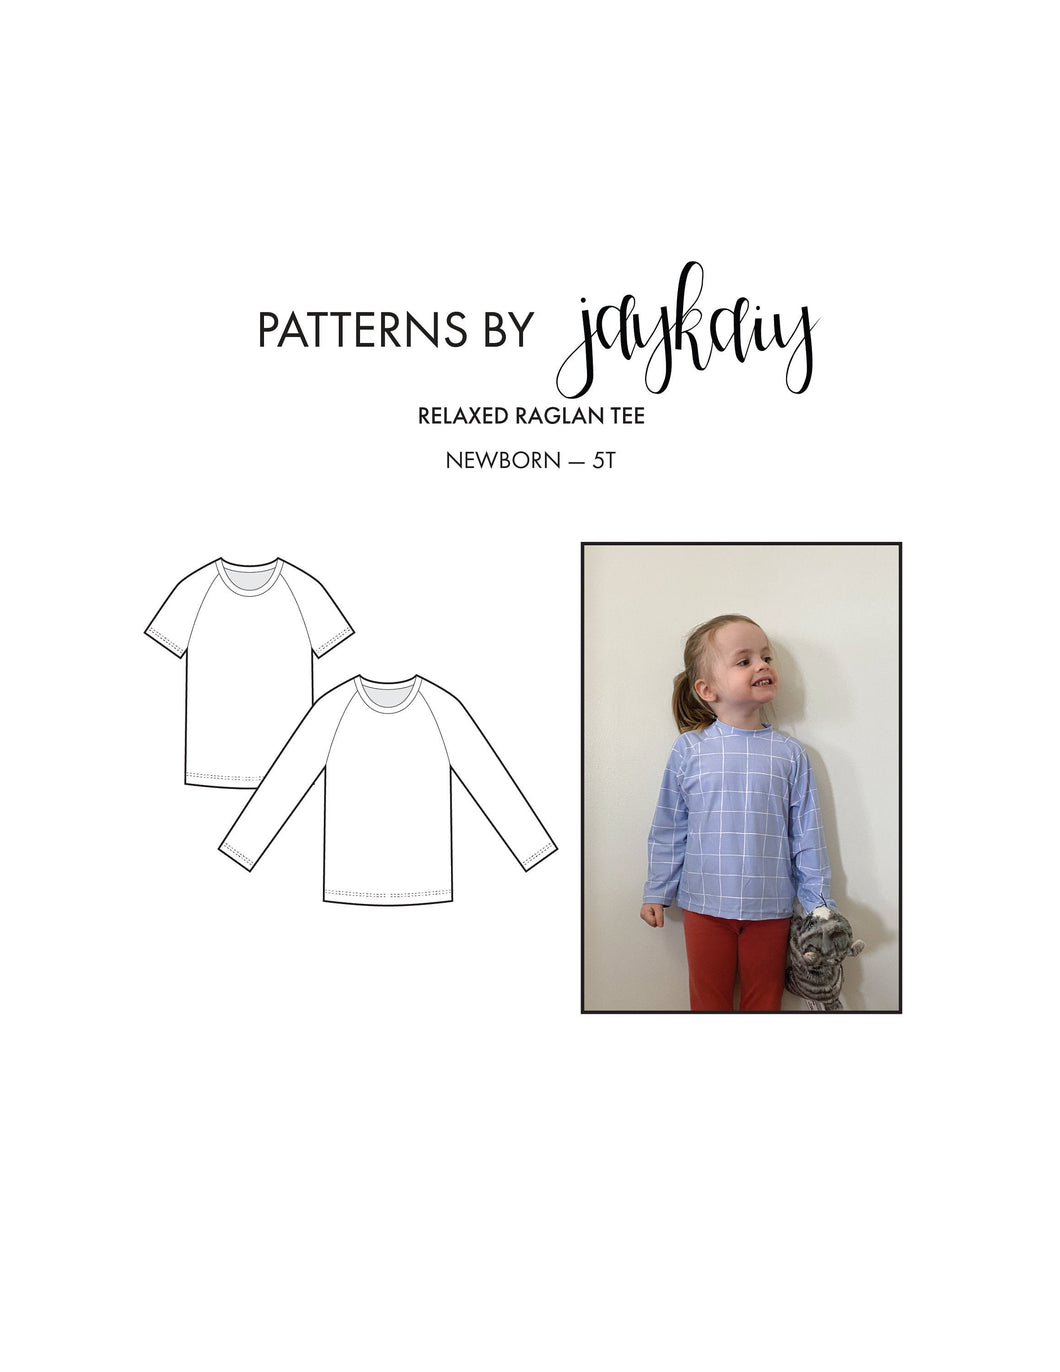 Kids Raglan t-shirt (Short and Long sleeve) sewing pattern with Picture Tutorial — Sizes Newborn to 5T